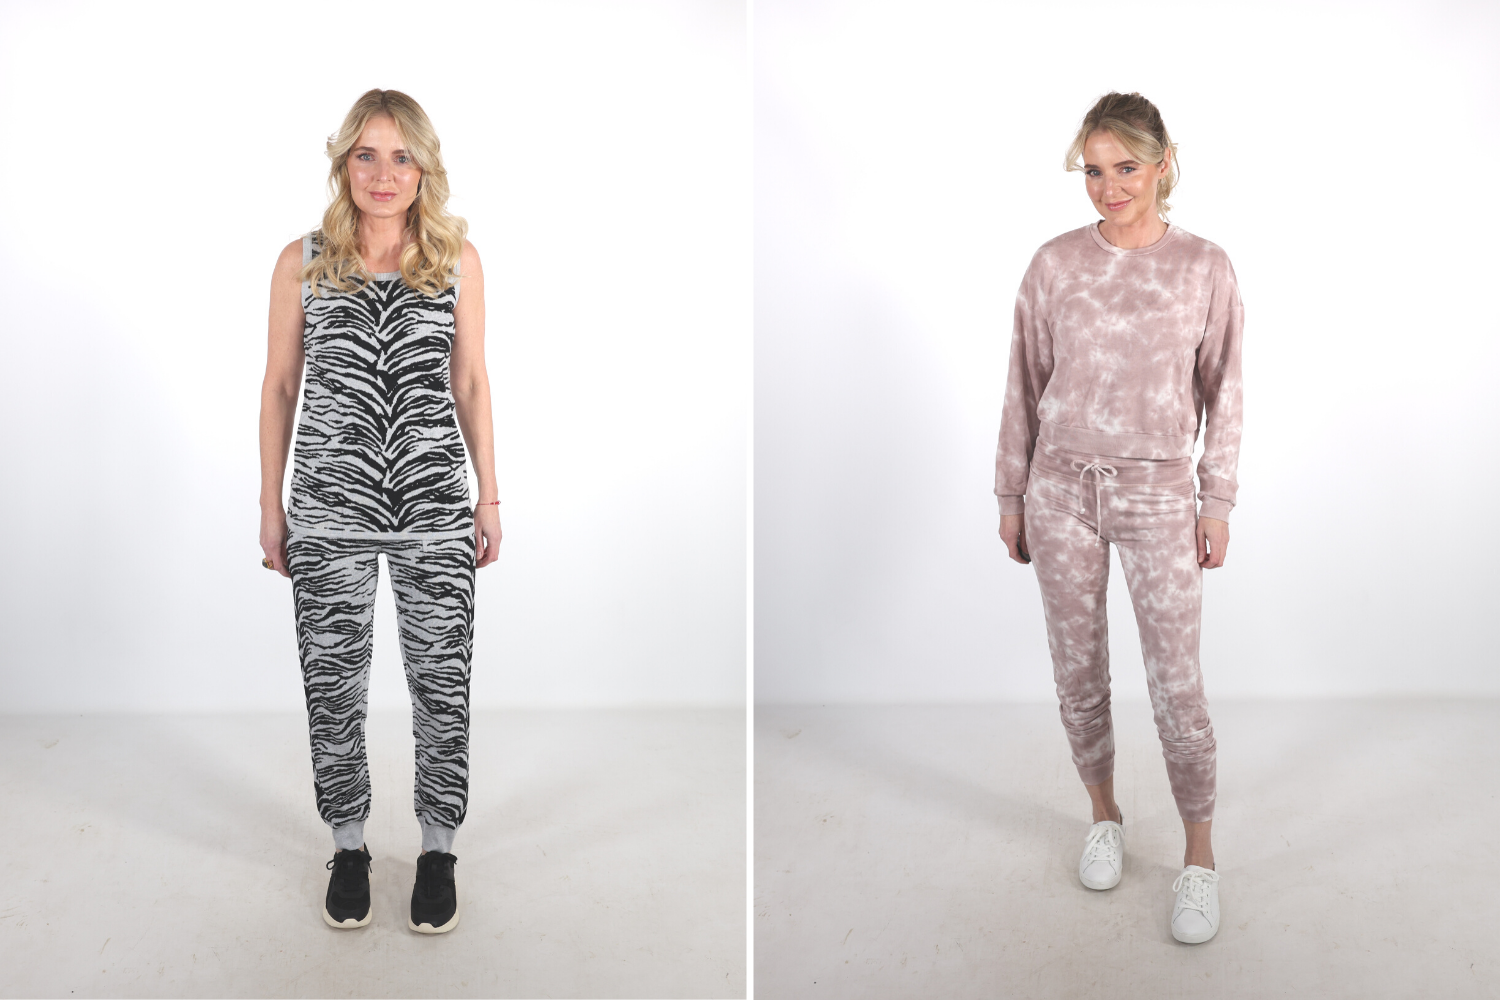 How To Look Younger, Erin Busbee of Busbee warning to beware of matching sets that are frumpy including a tiger print matching set on the left and a pink tie dye matching set by Alo Yoga on the right